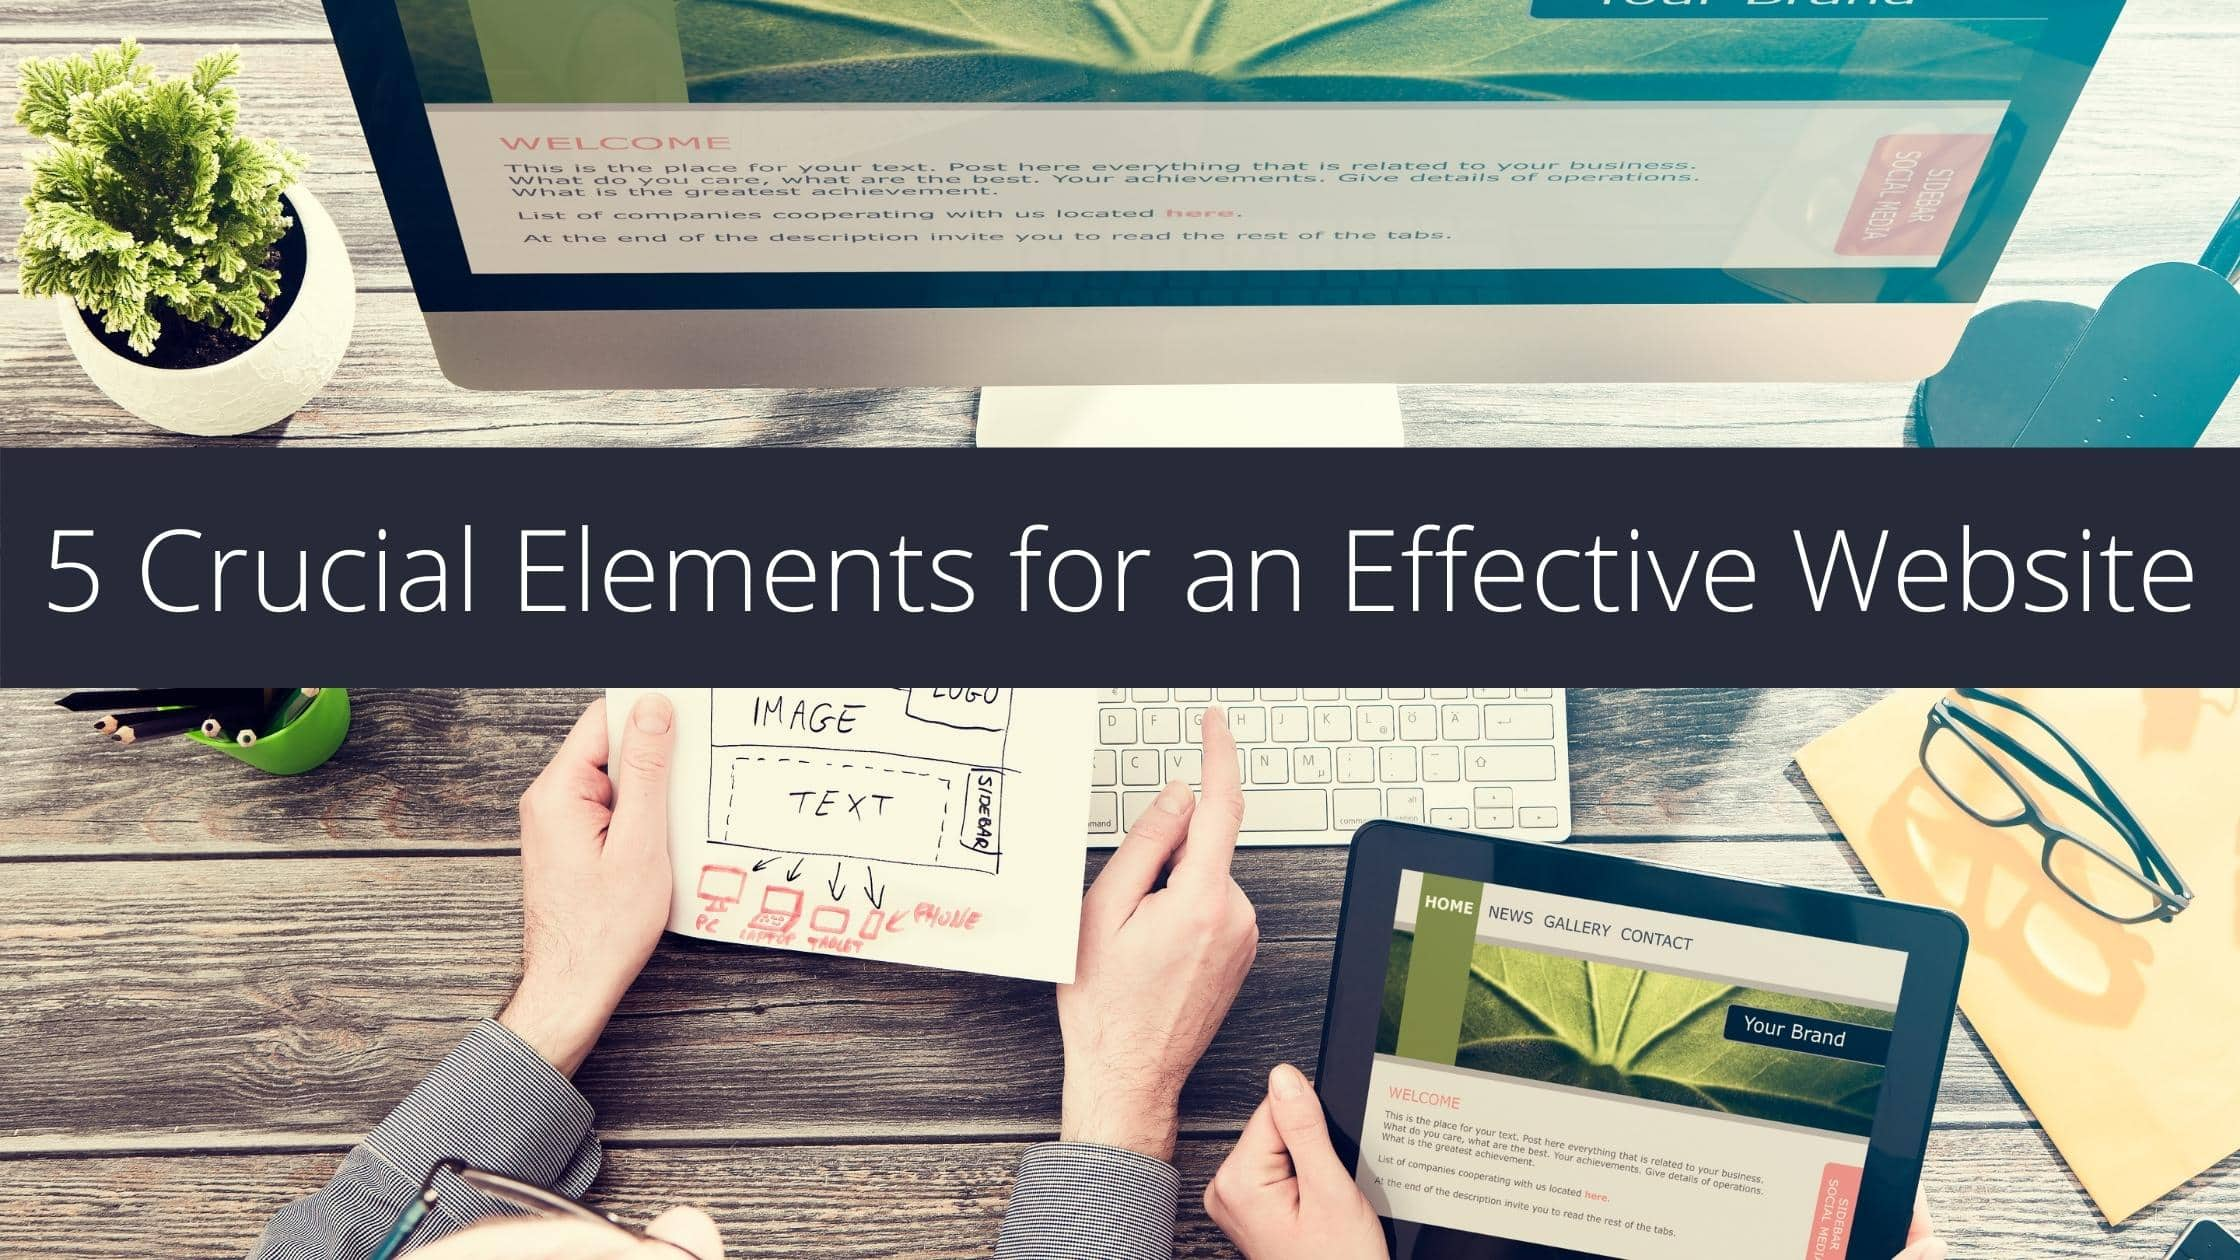 5 Crucial Elements for an Effective Website